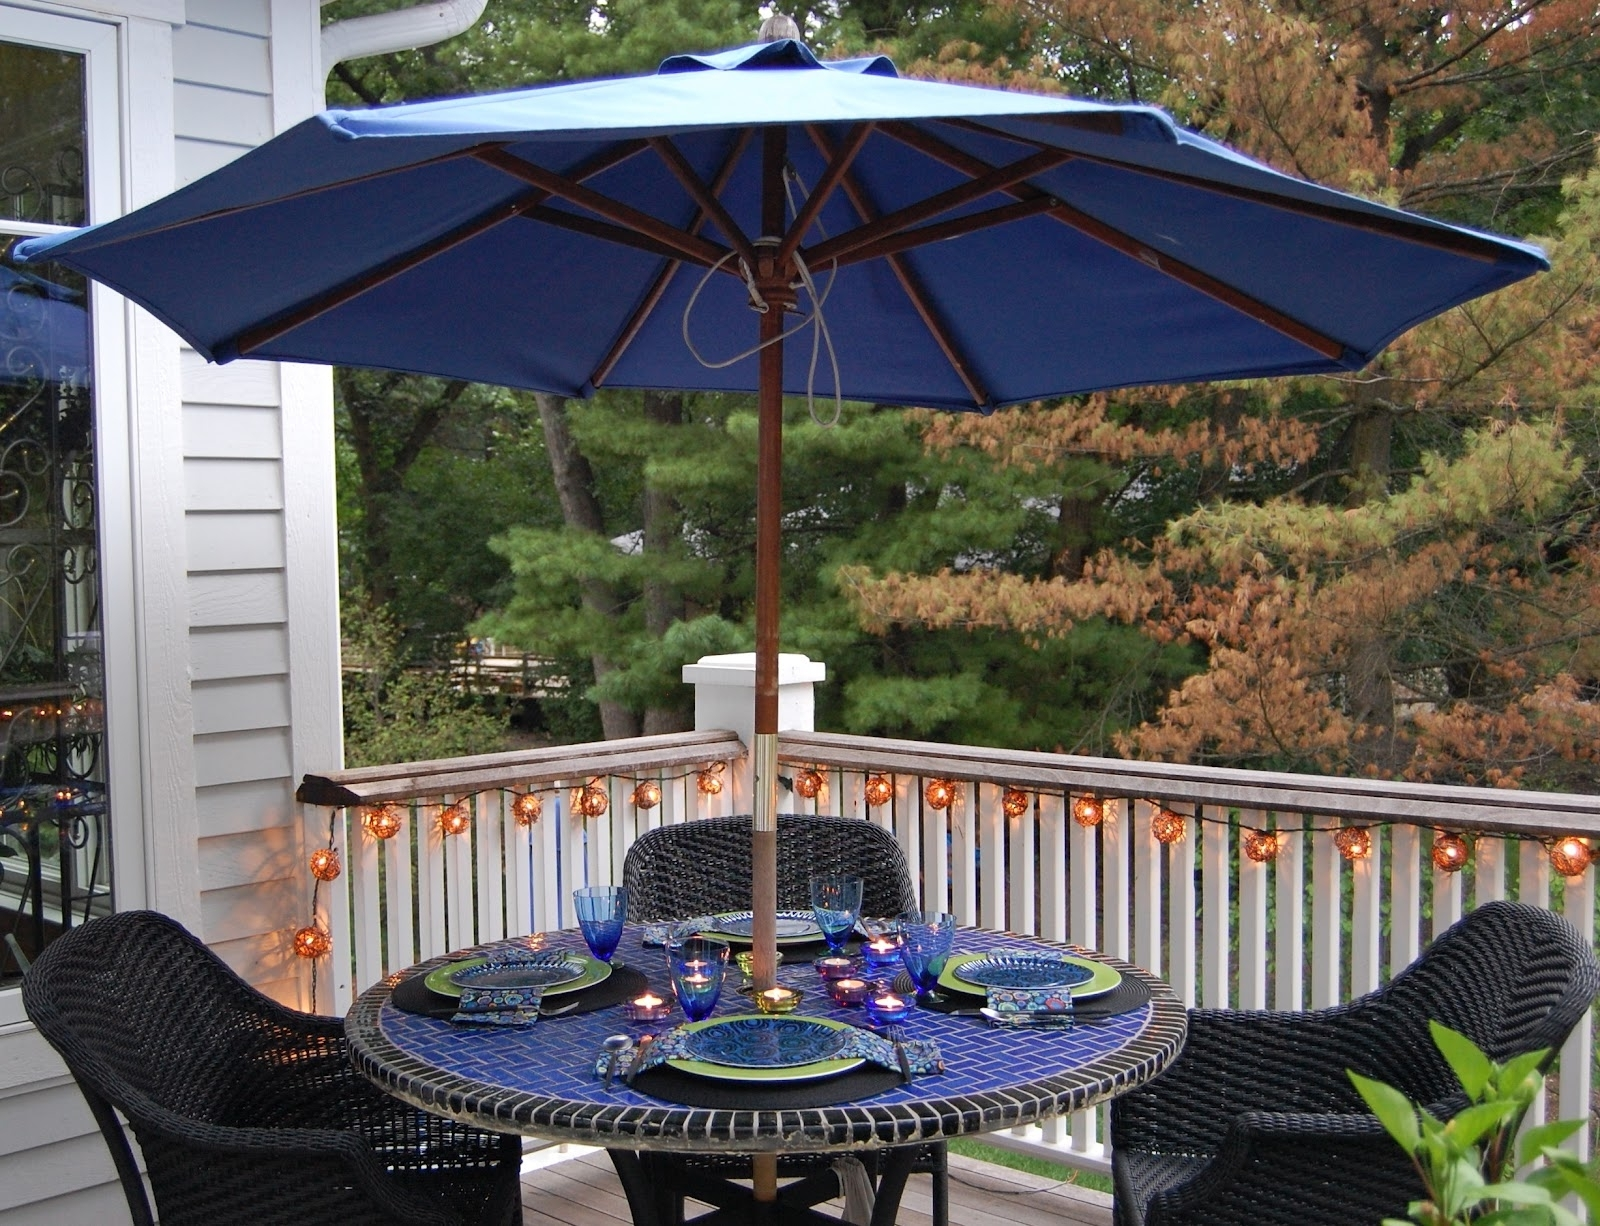 Patio: Awesome Umbrella Patio Set Frontgate Outdoor Furniture Inside Favorite Patio Furniture With Umbrellas (View 19 of 20)